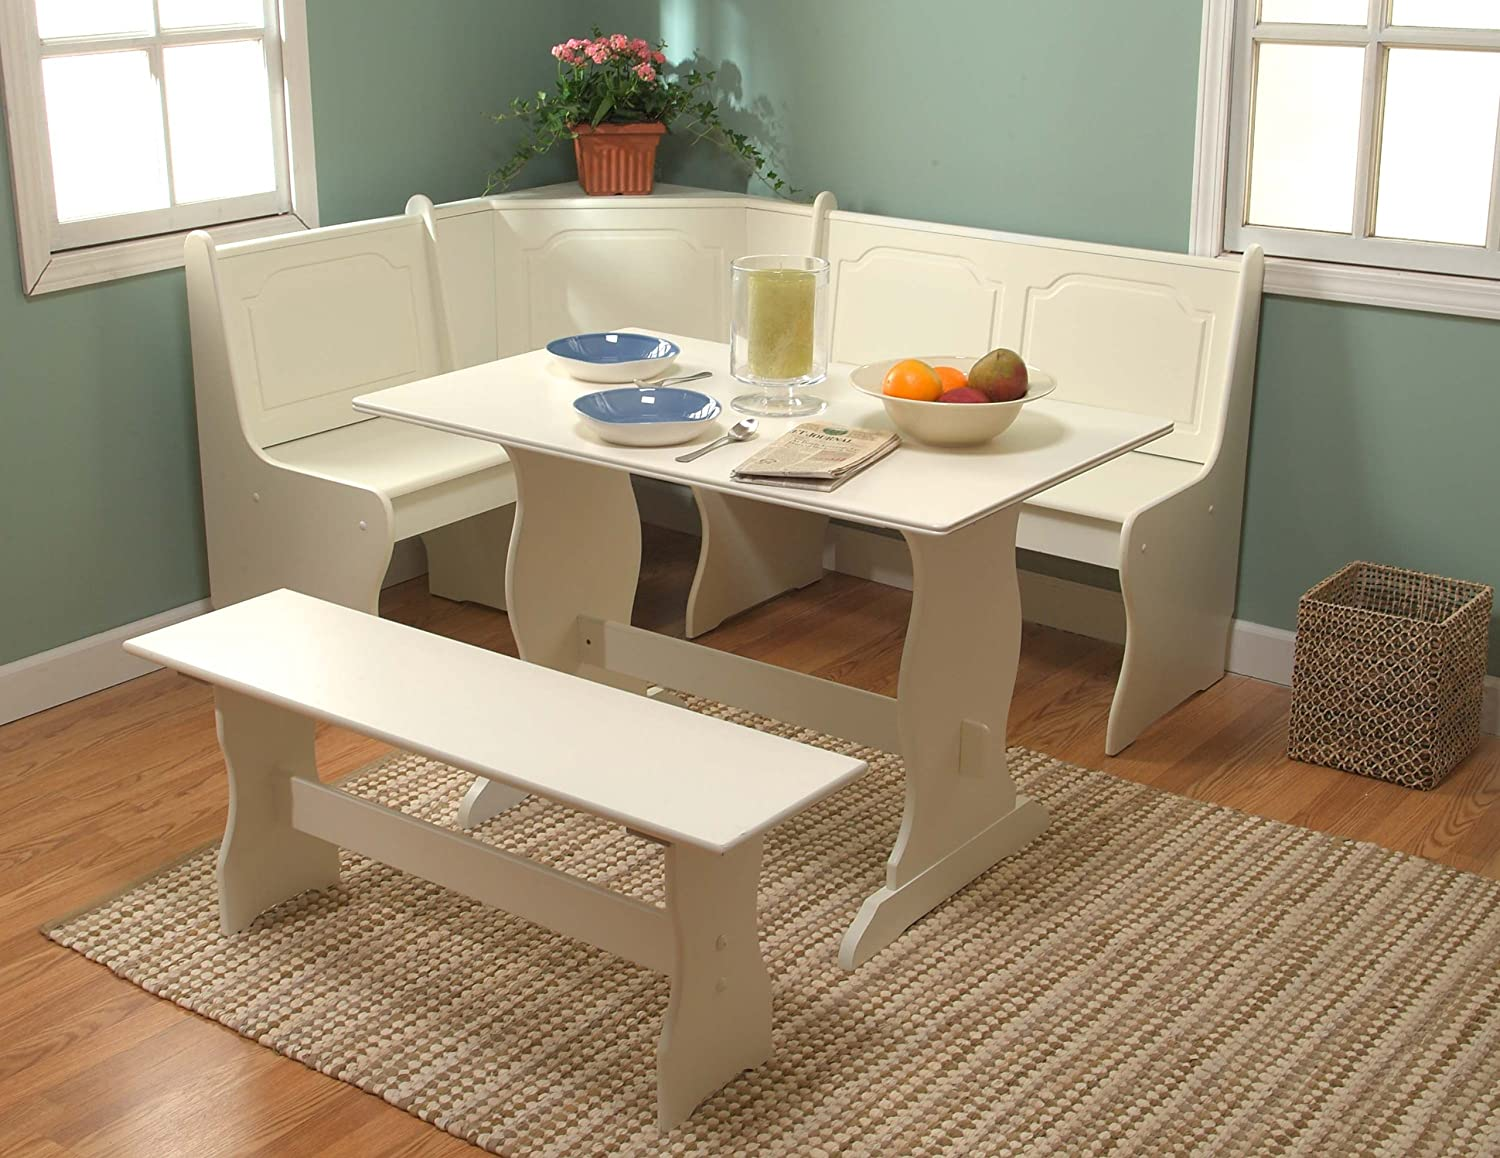 Amazon Target Marketing Systems 3 Piece Breakfast Nook Dining Set With A L Shaped Storage Bench And Trestle Style Table